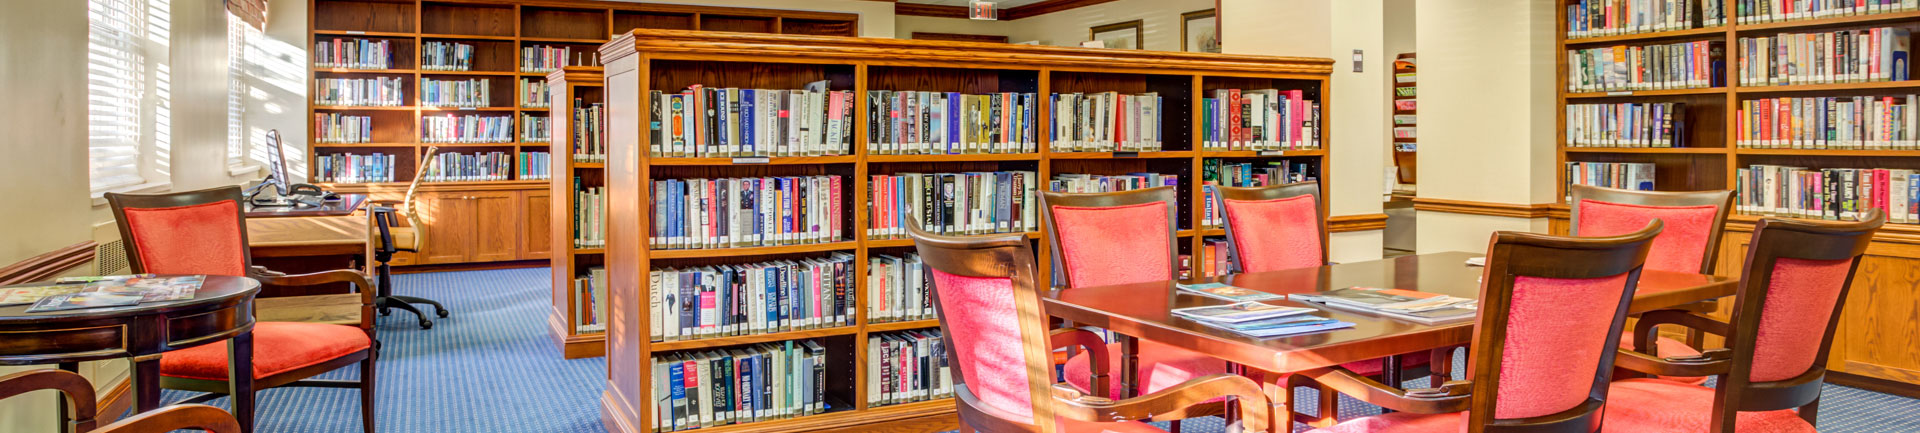 a library inside of a senior living community with tables and chairs to sit at